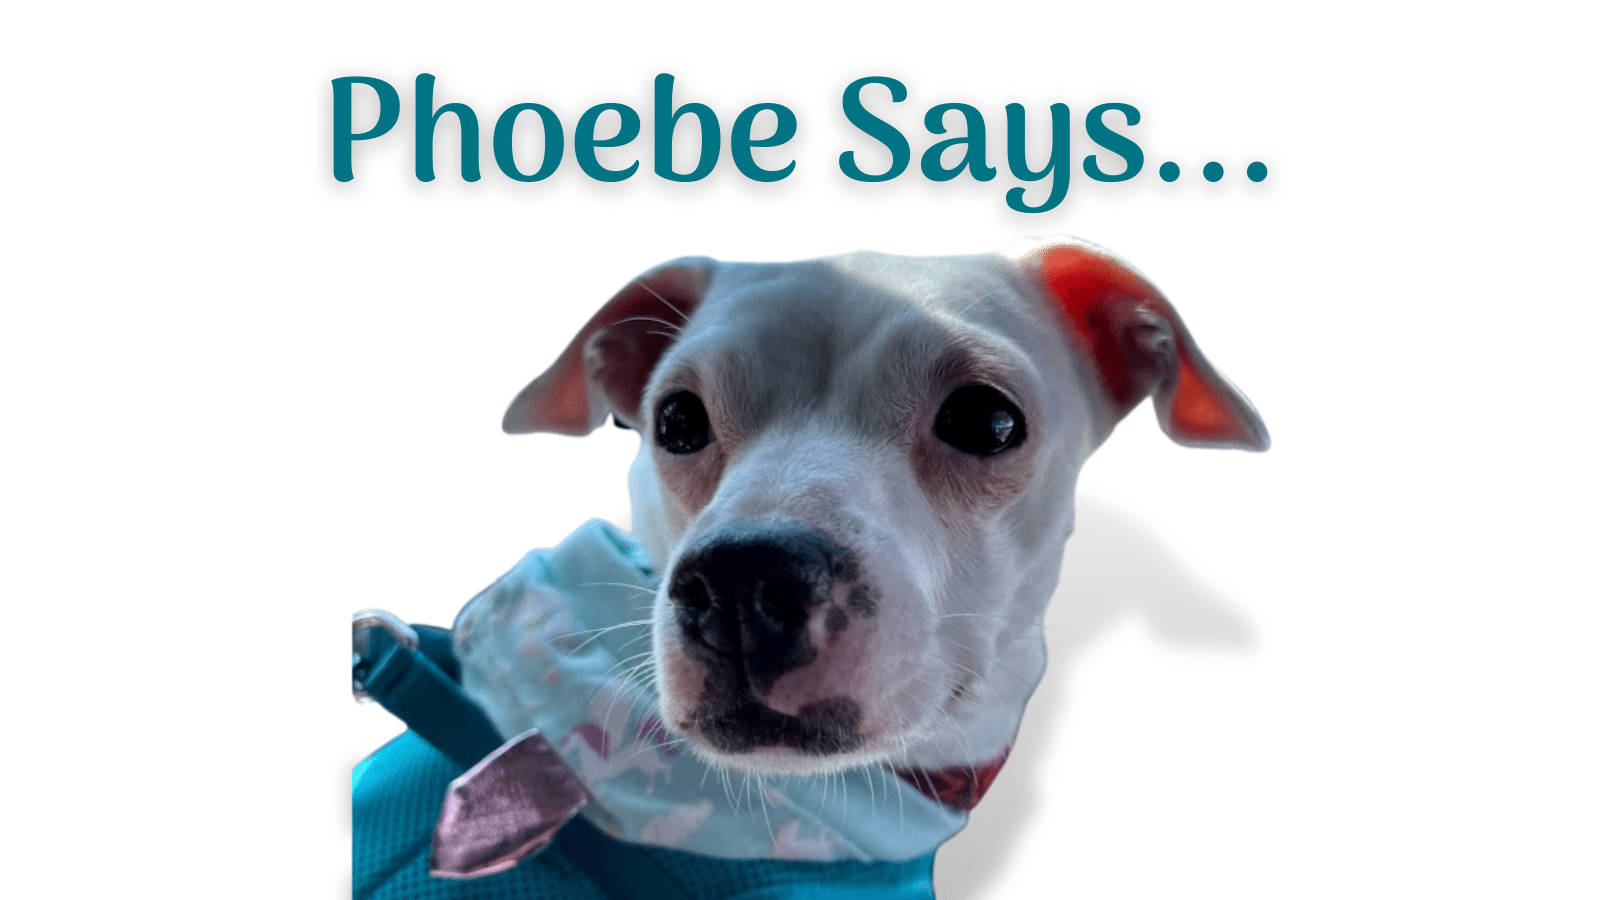 Phoebe Says… Optimize Your Content!